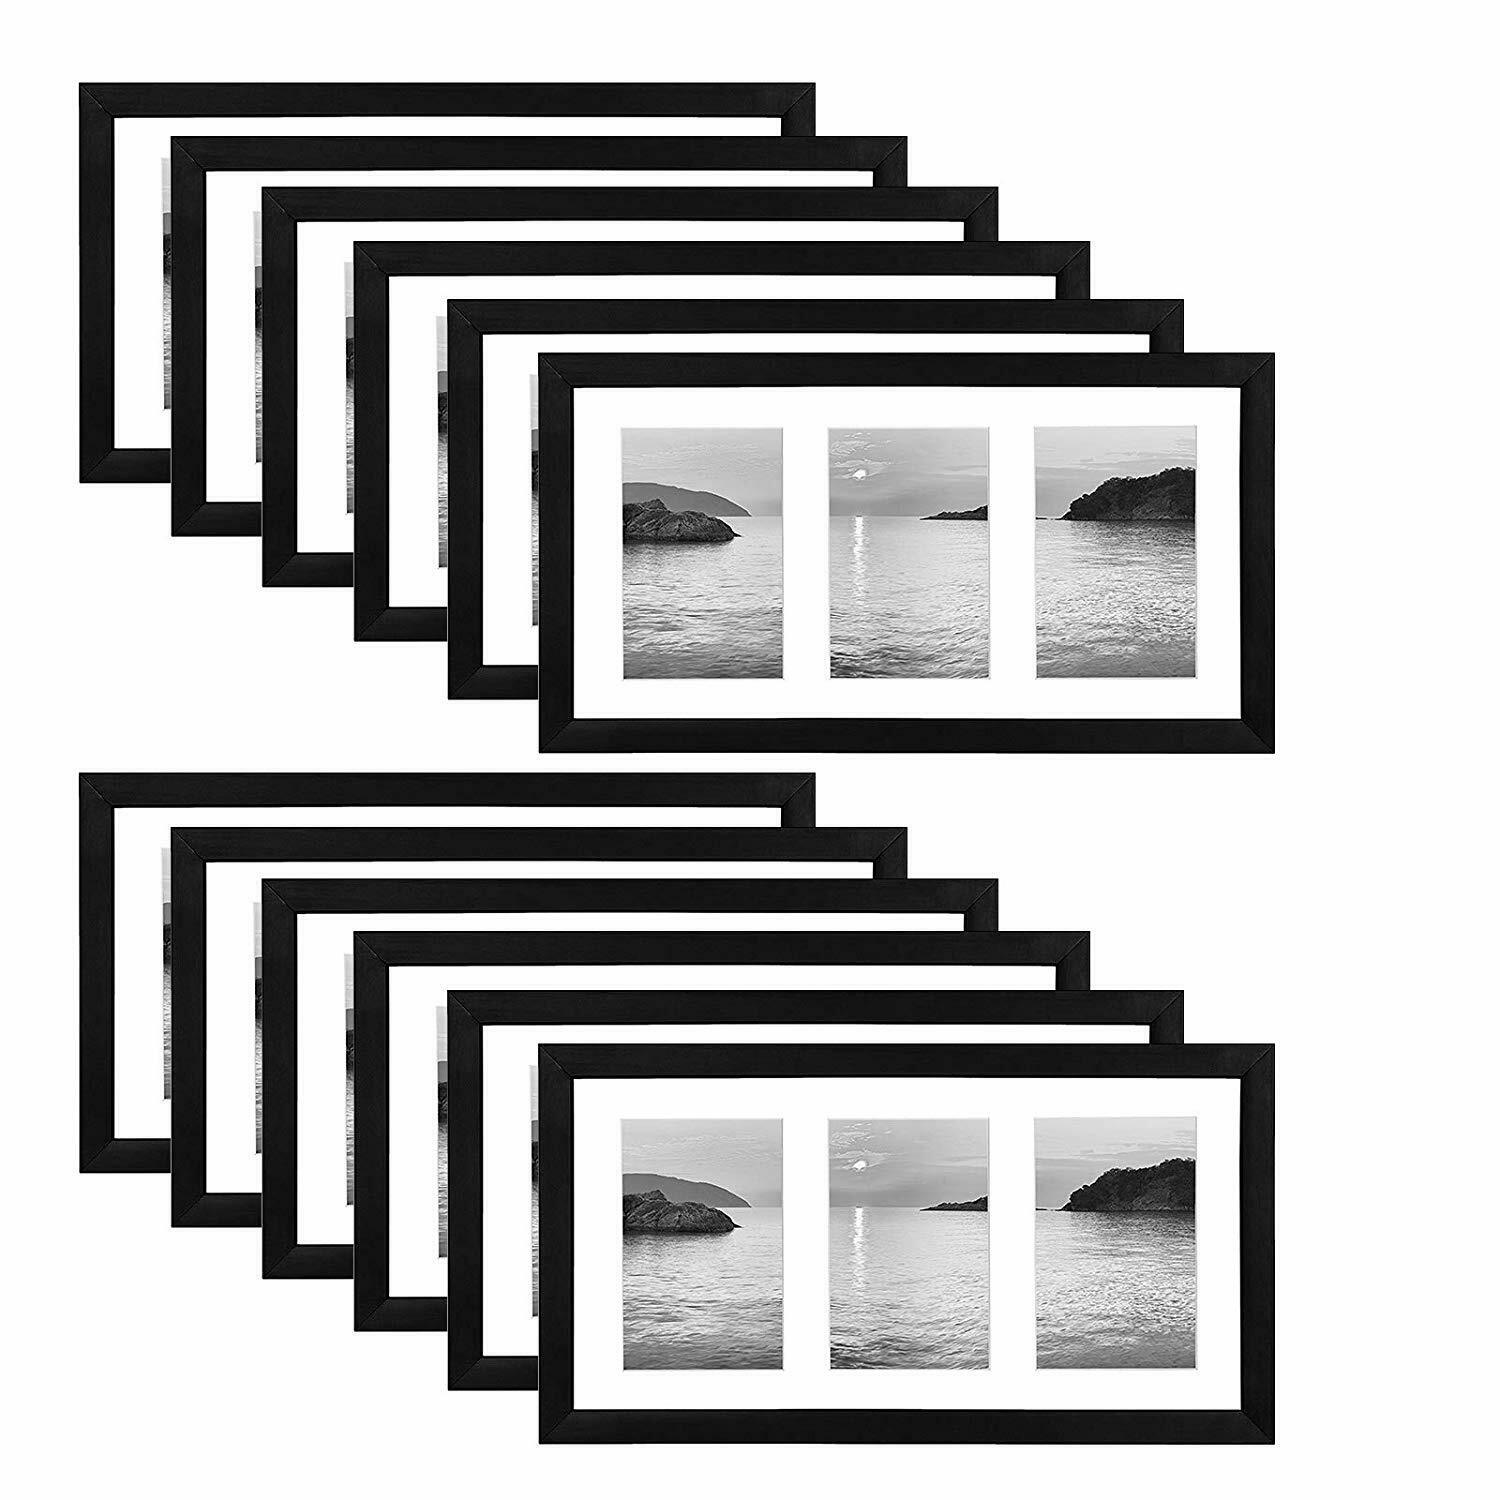 Americanflat 12 Pack - 8x14 Collage Picture Frames - Display